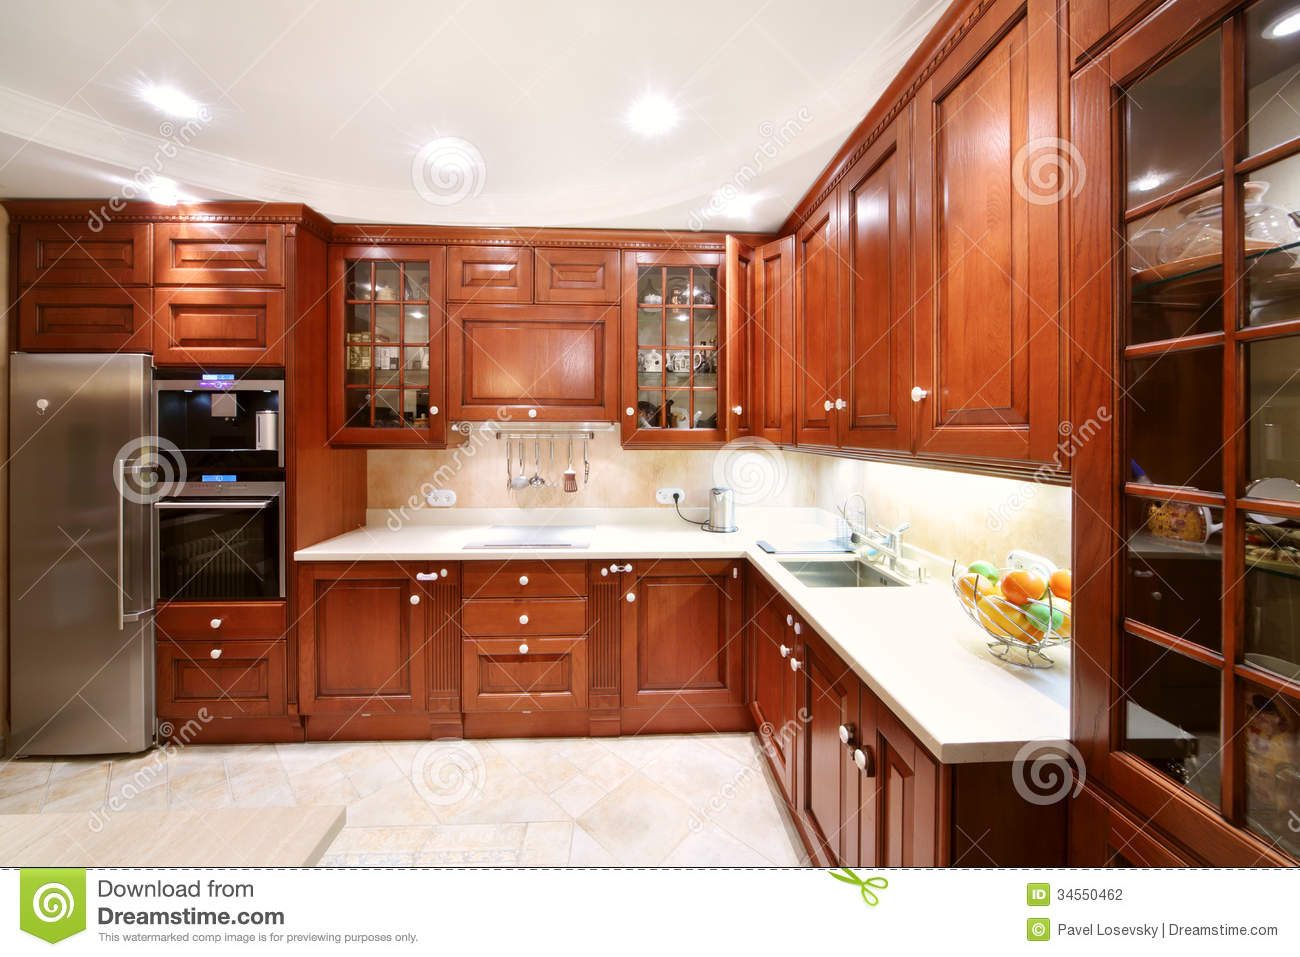 how to clean laminate cupboards